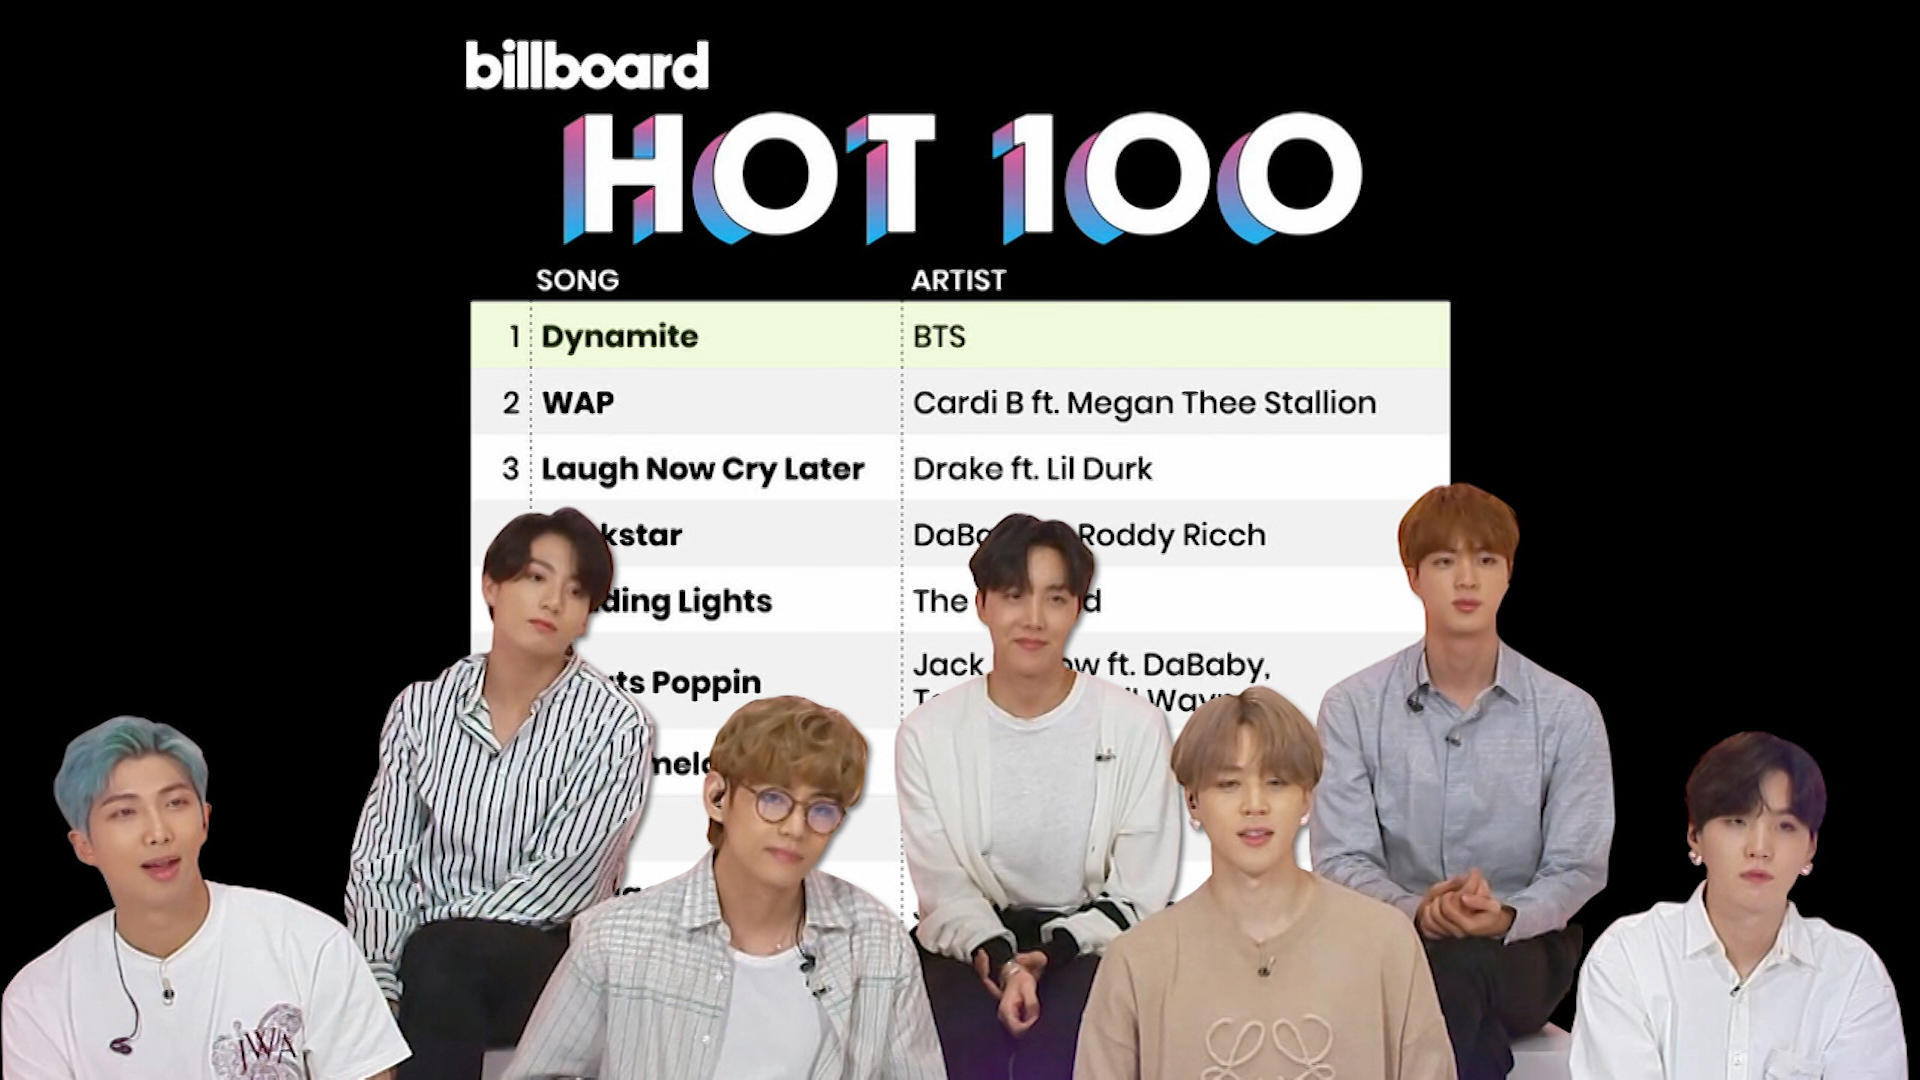 Ep.202 BTS tops Billboard Hot 100: Is a new wave of Hallyu coming?